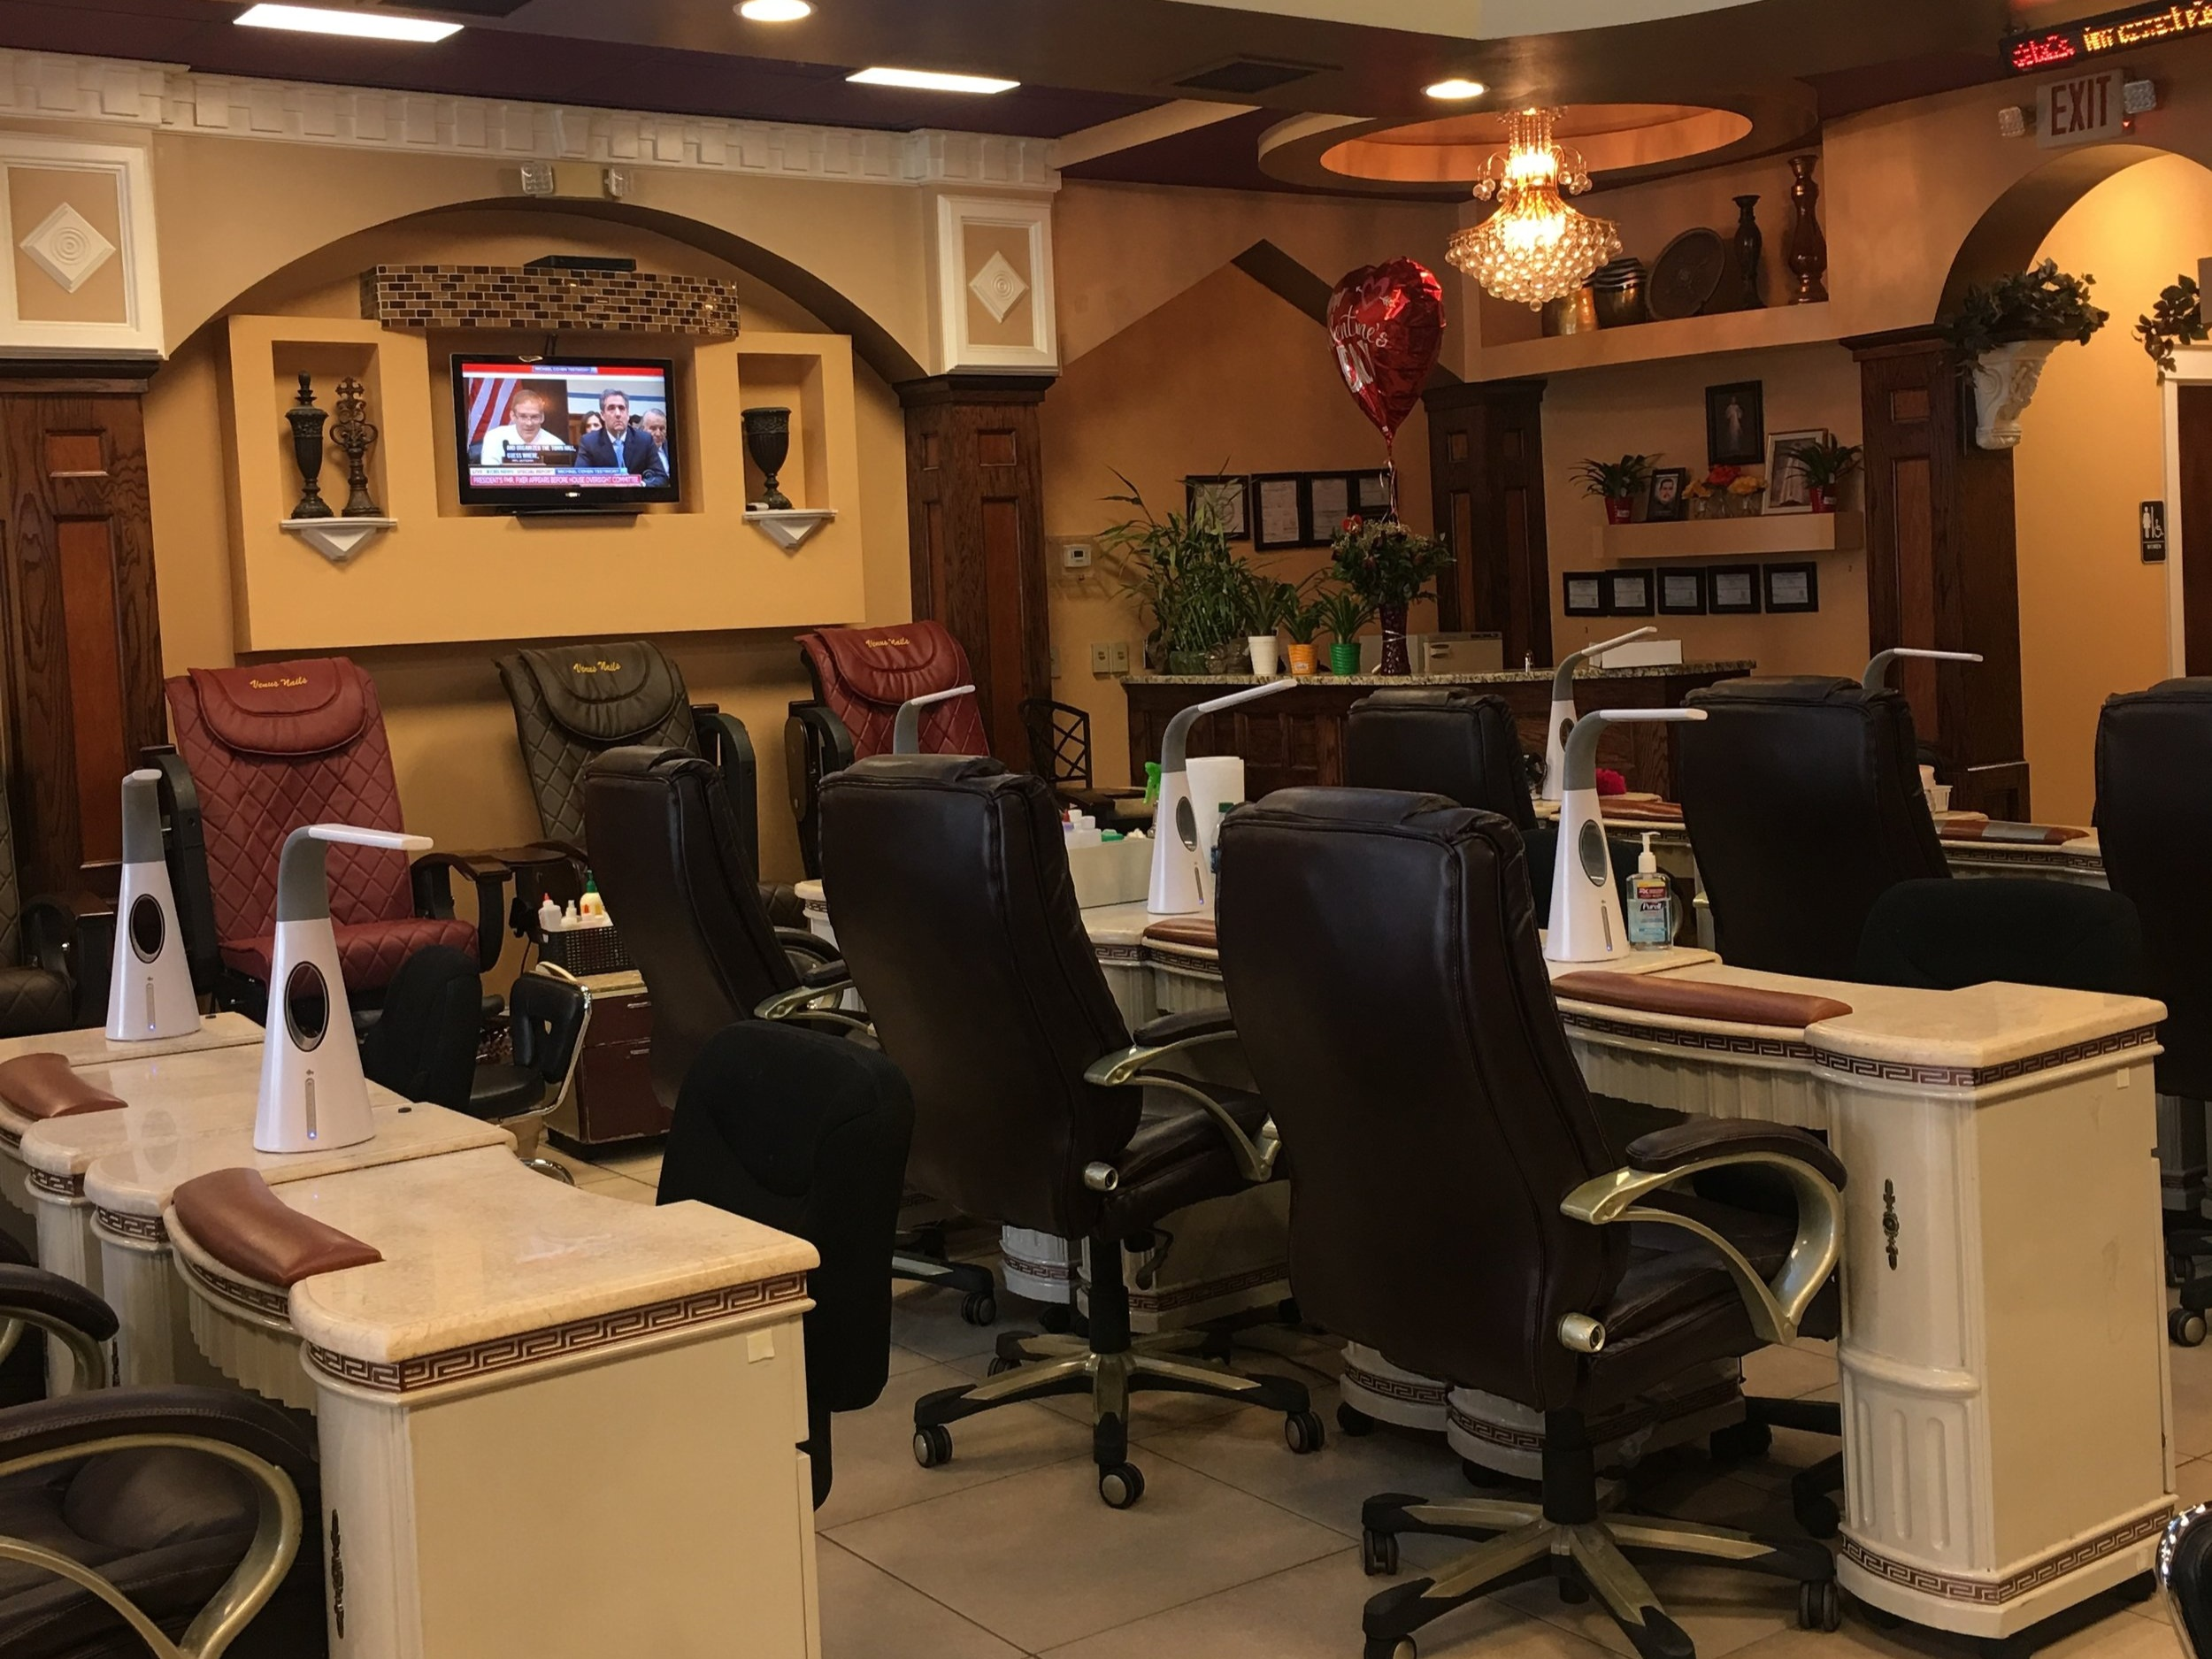 MAnicures & Pedicures - Stop in to get a manicure or pedicure with us! Our prices range from $15-$50 to best fit everyone's needs when it comes to hands and feet.